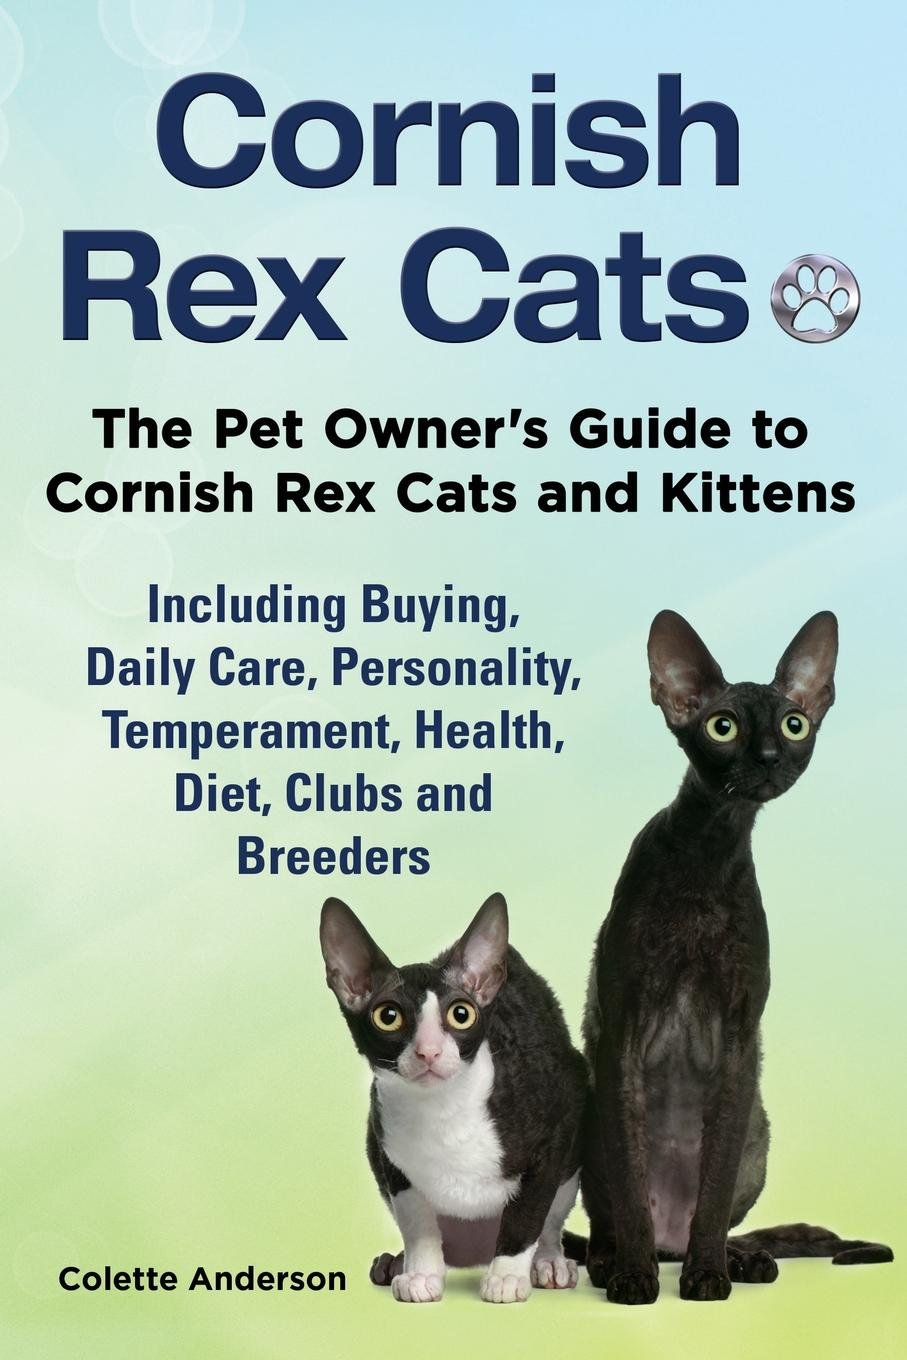 Cornish Rex Cats The Pet Owners Guide To And Kittens Including Buying Daily Care Personality Temperament Health Diet